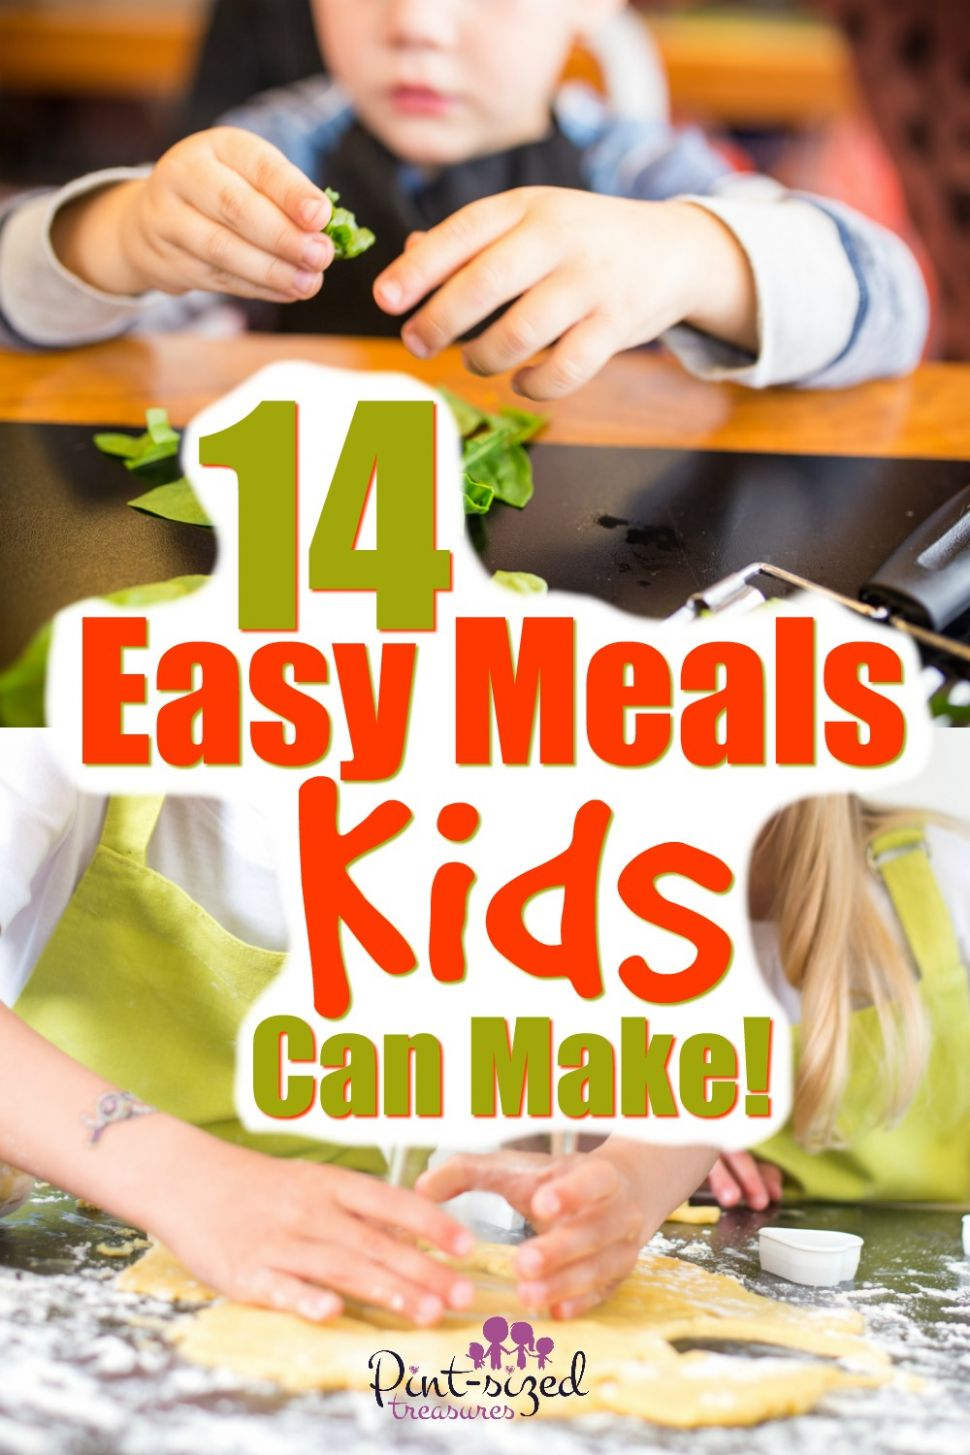 11 Easy Meals Kids Can Make